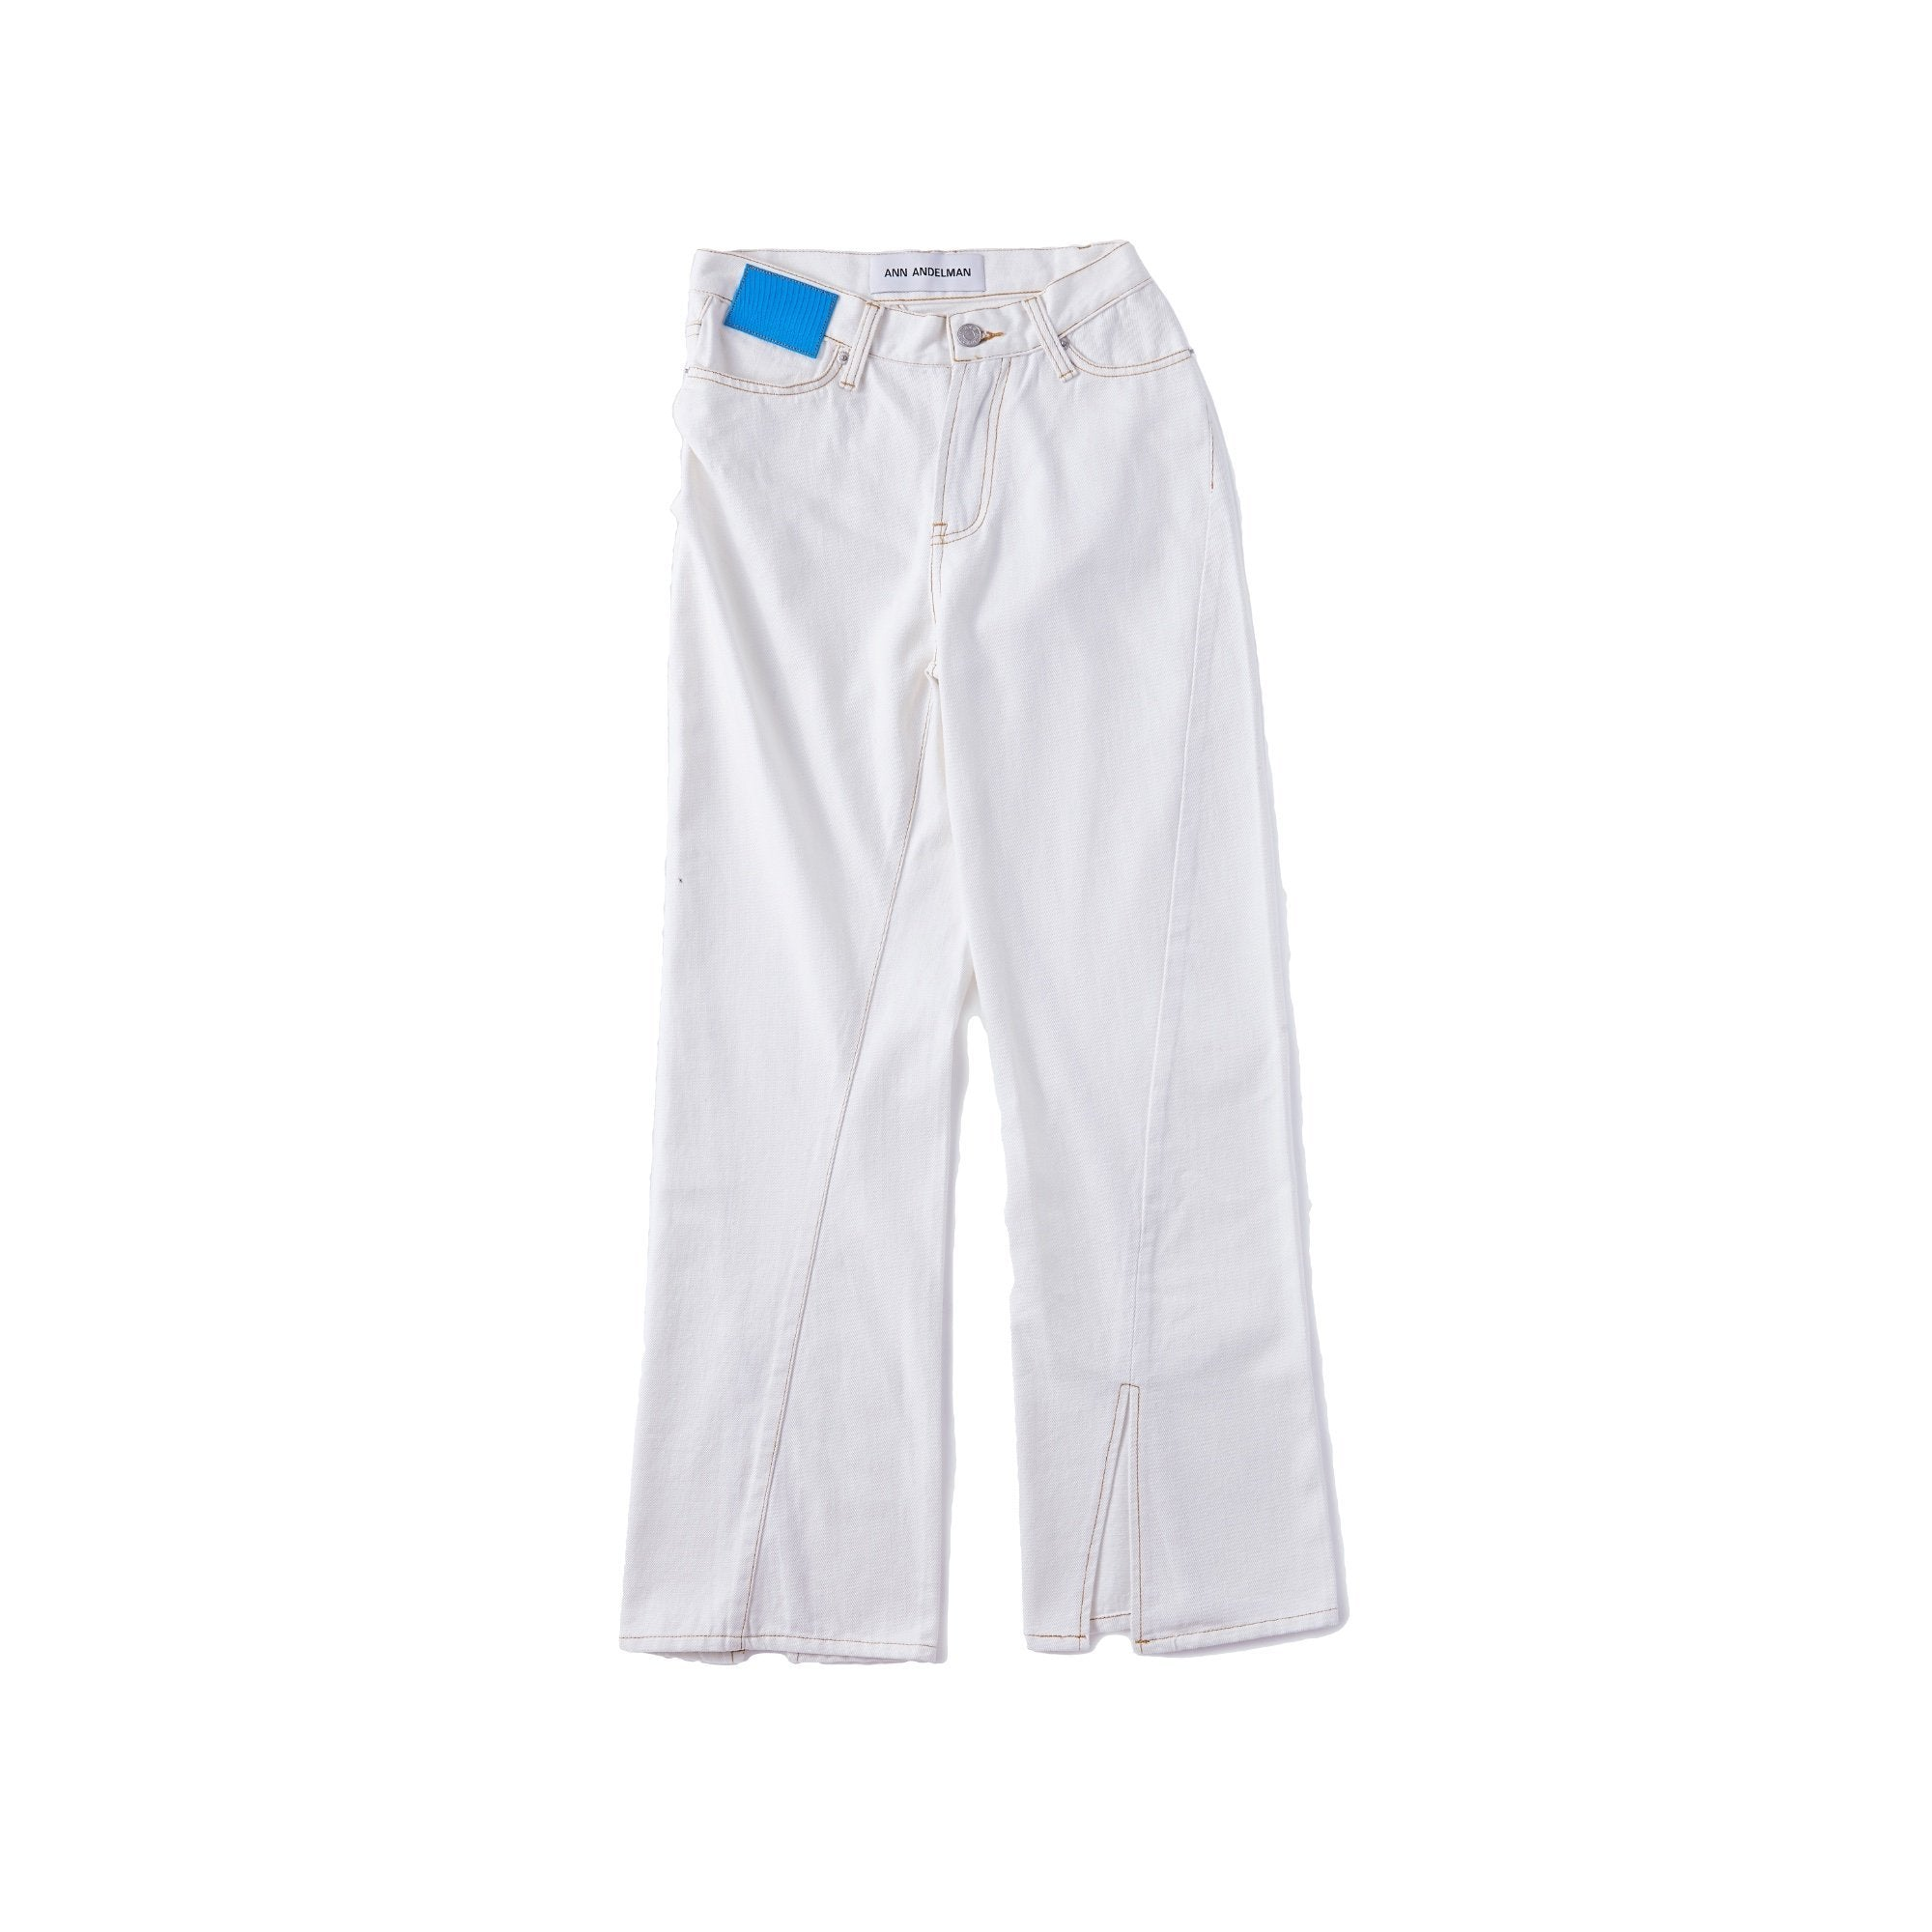 ANN ANDELMAN White Lizard Patch Jeans | MADA IN CHINA